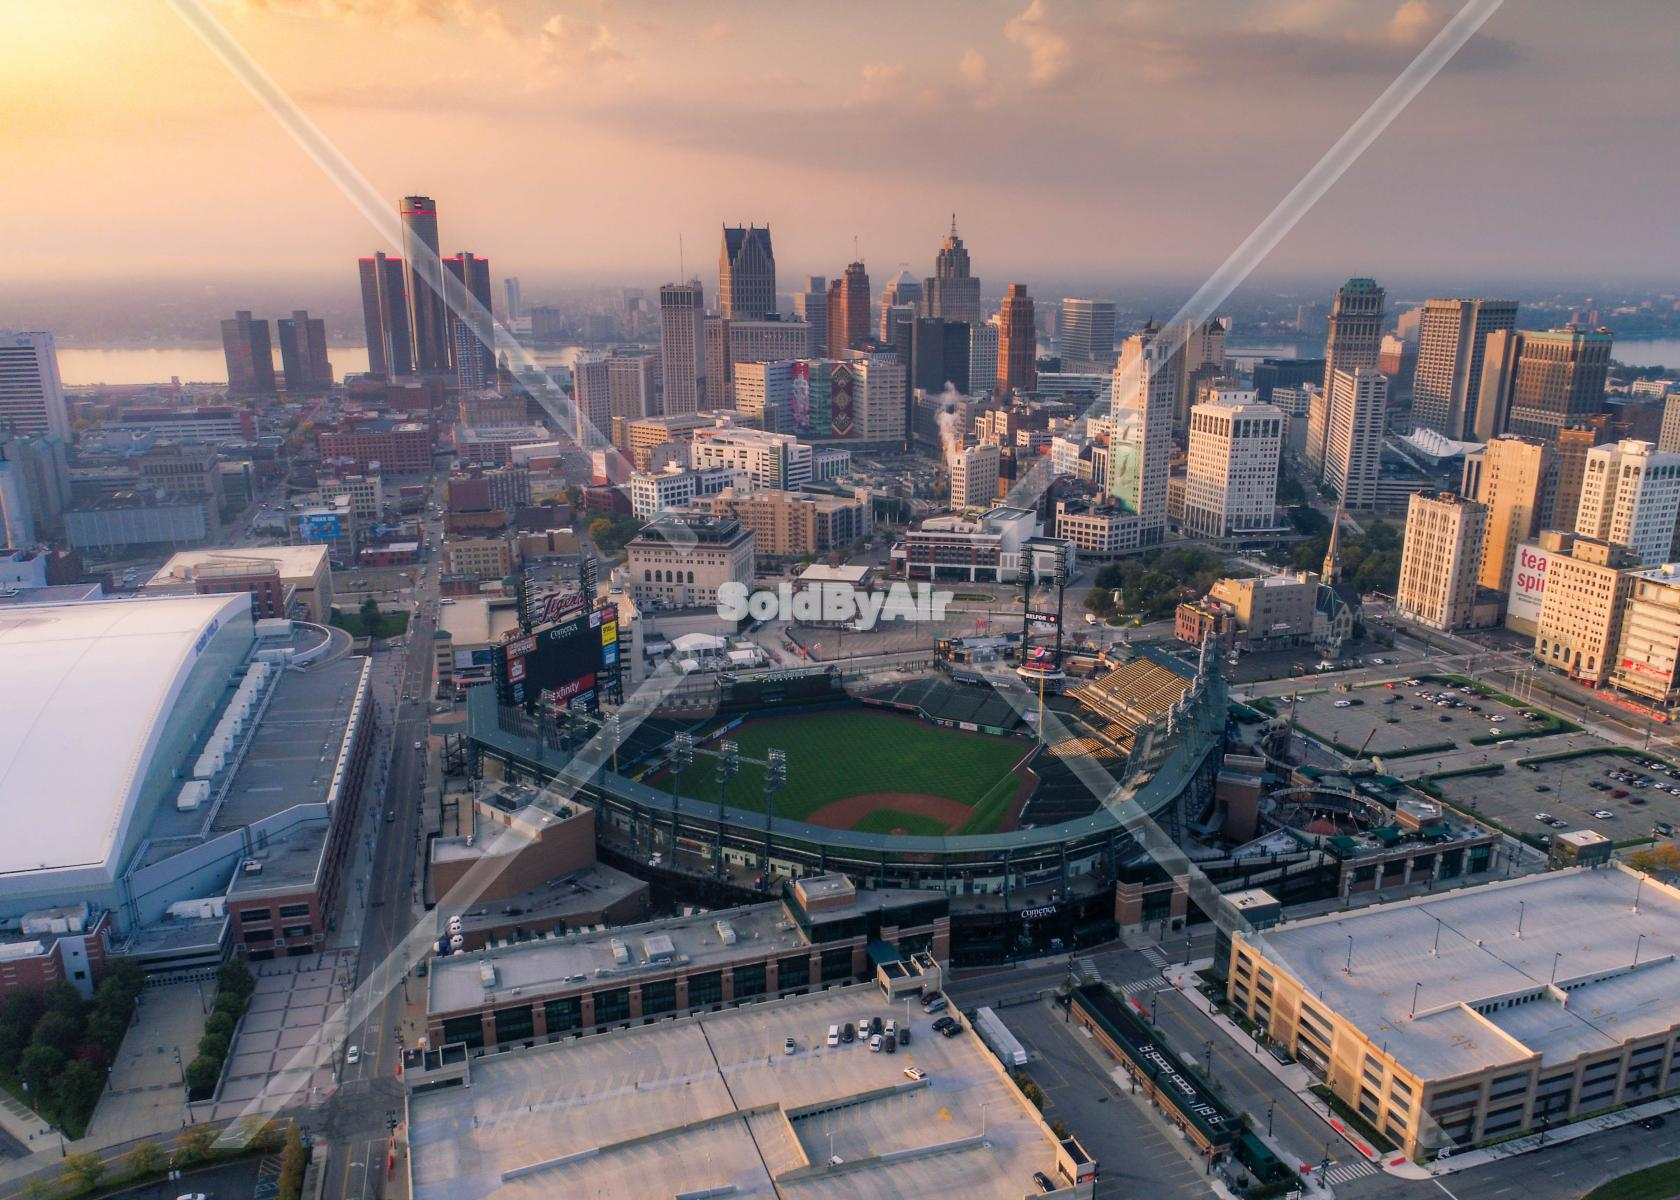 Drone Photo of Good morning Detroit in Detroit Michigan